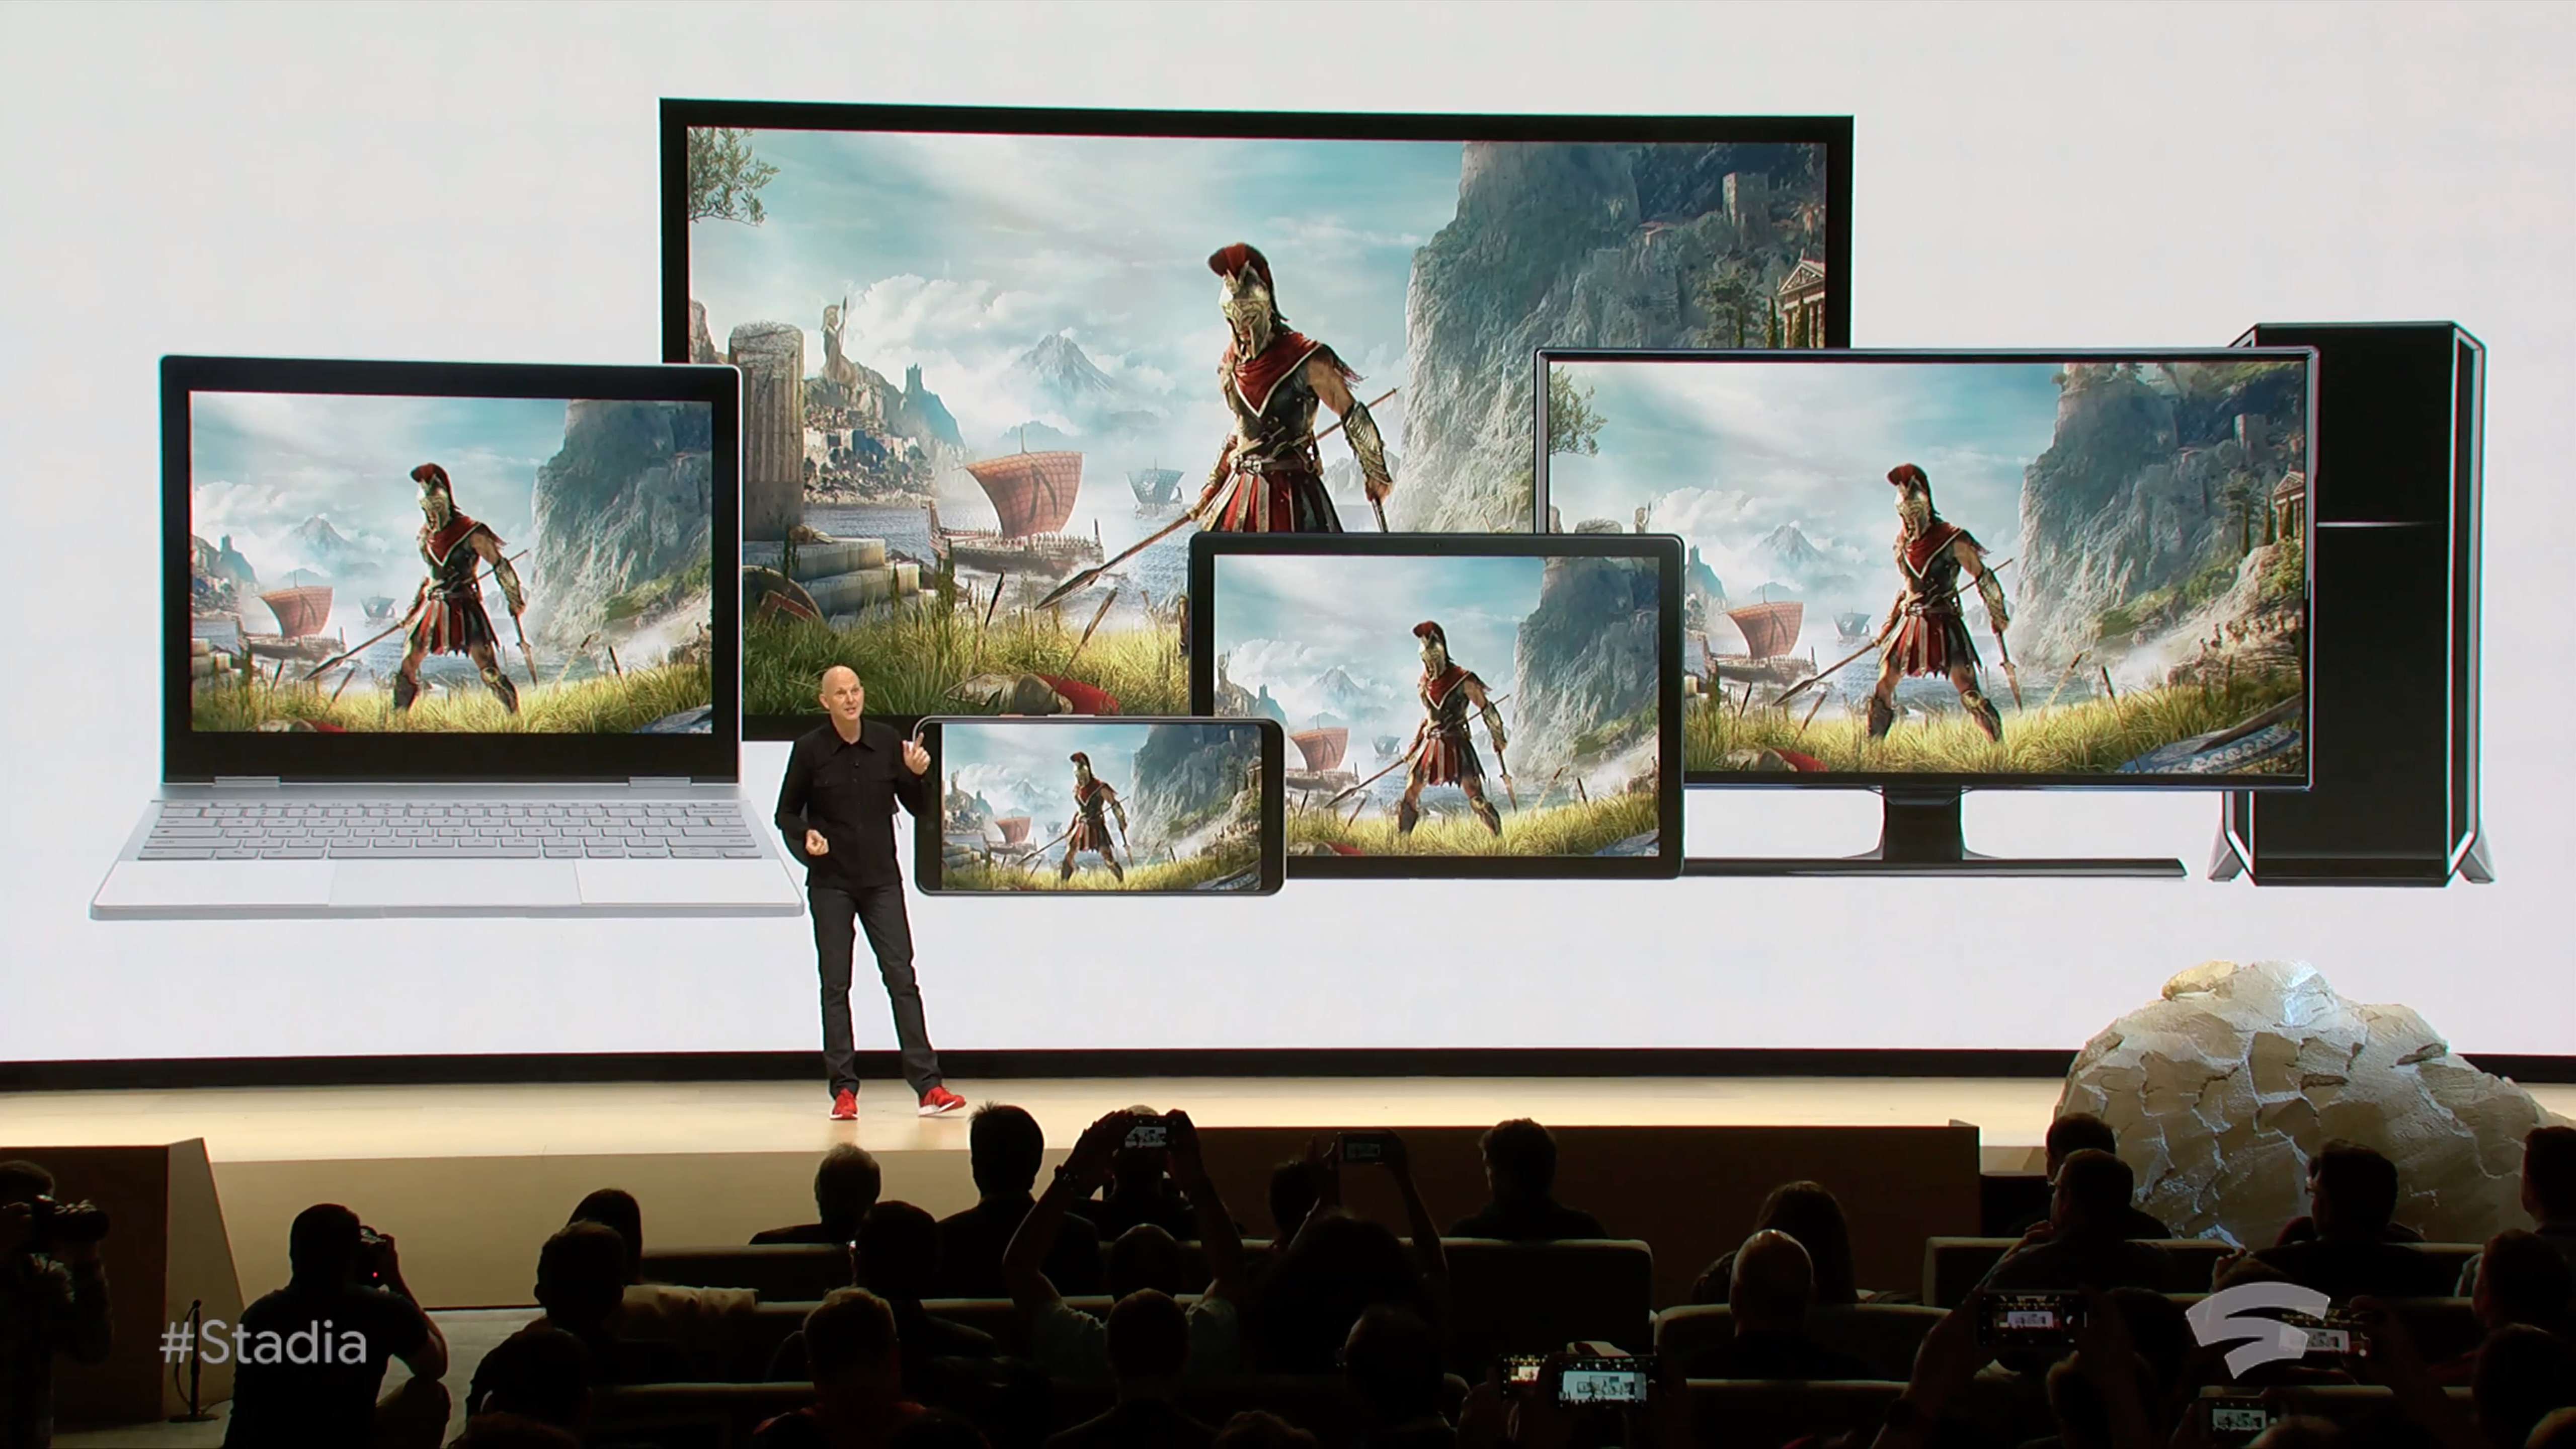 Here's how you'll access Google's Stadia cloud gaming service